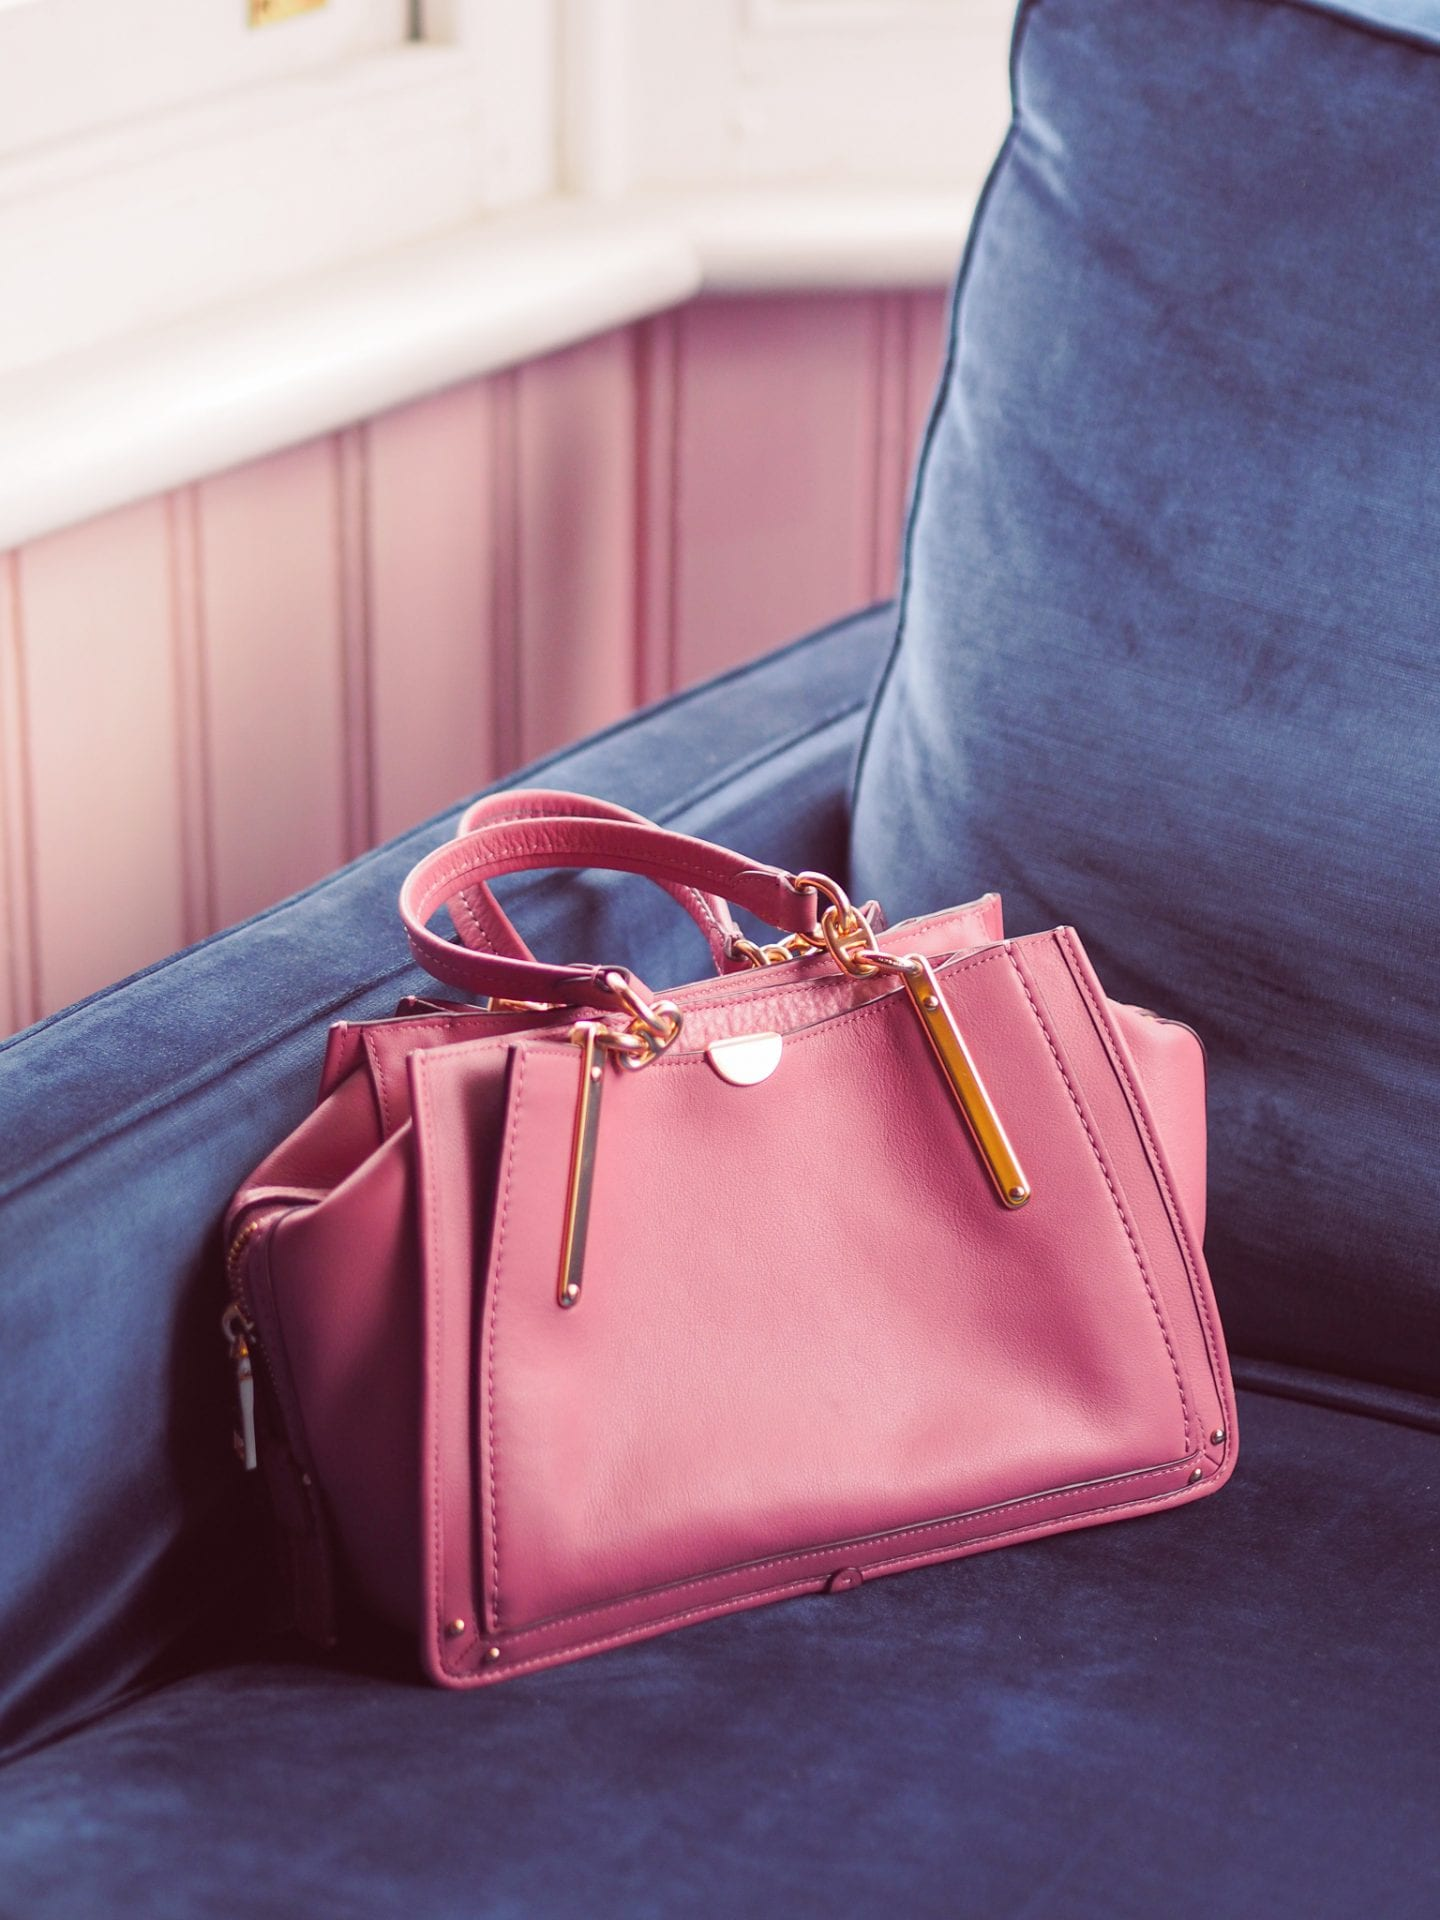 How To Clean Coach Bags